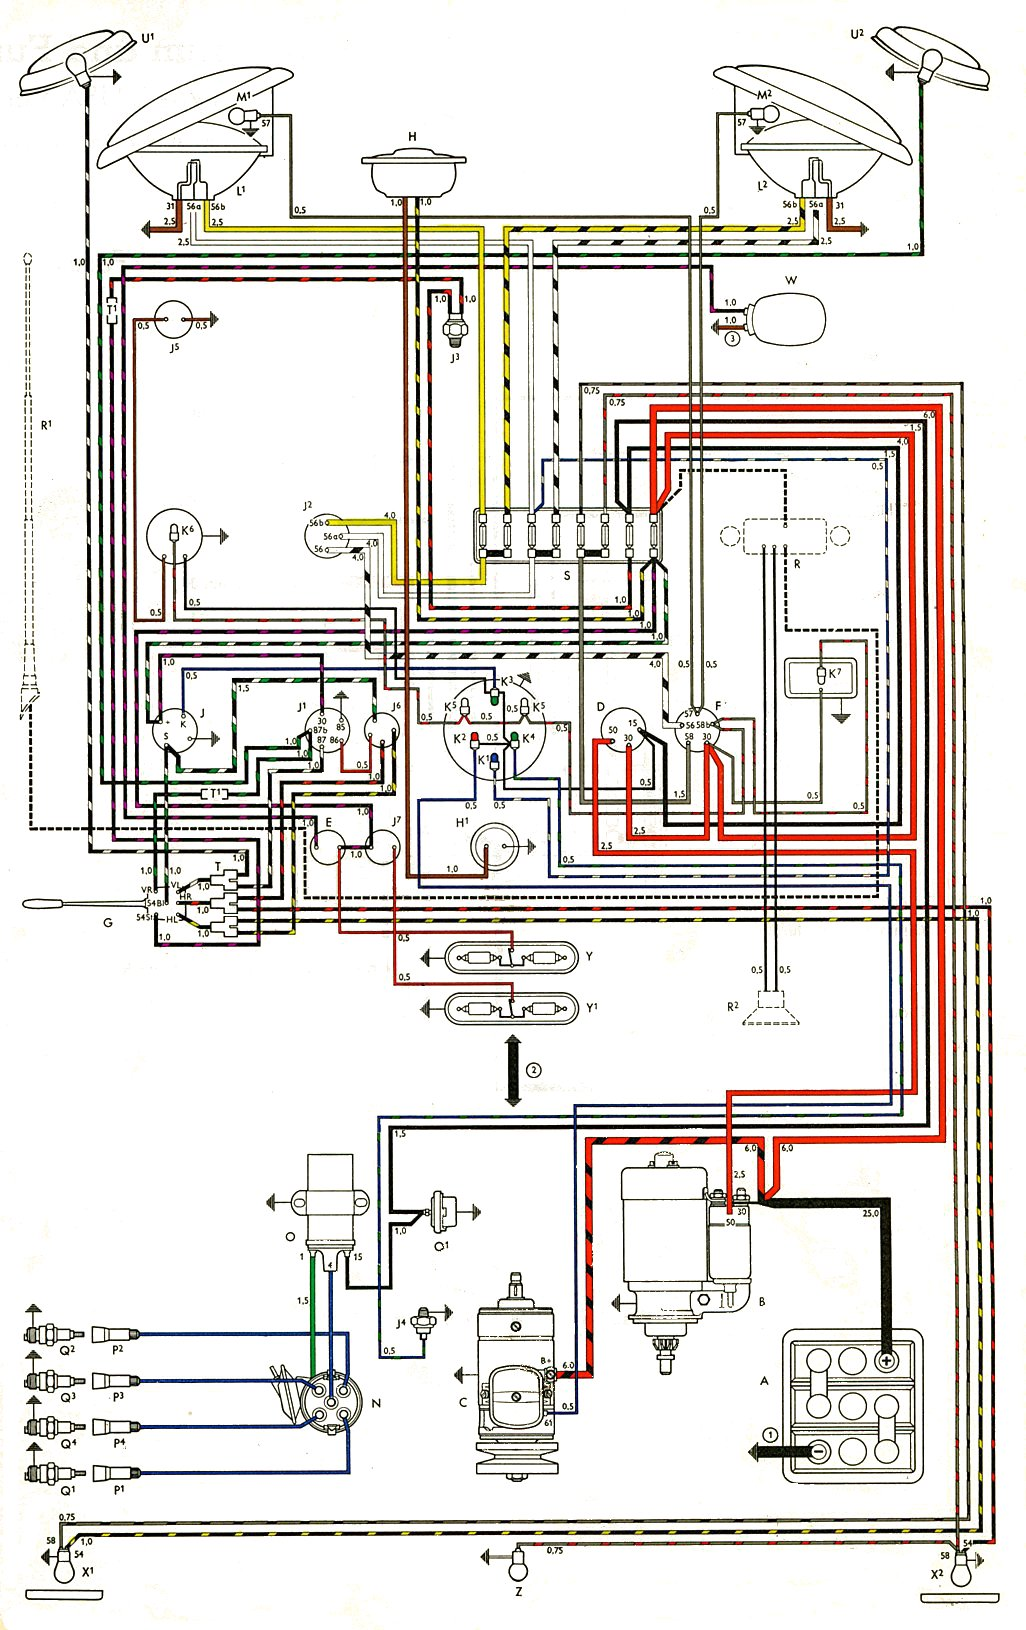 Eagle Bus Wiring Diagram Library Centurion Boat